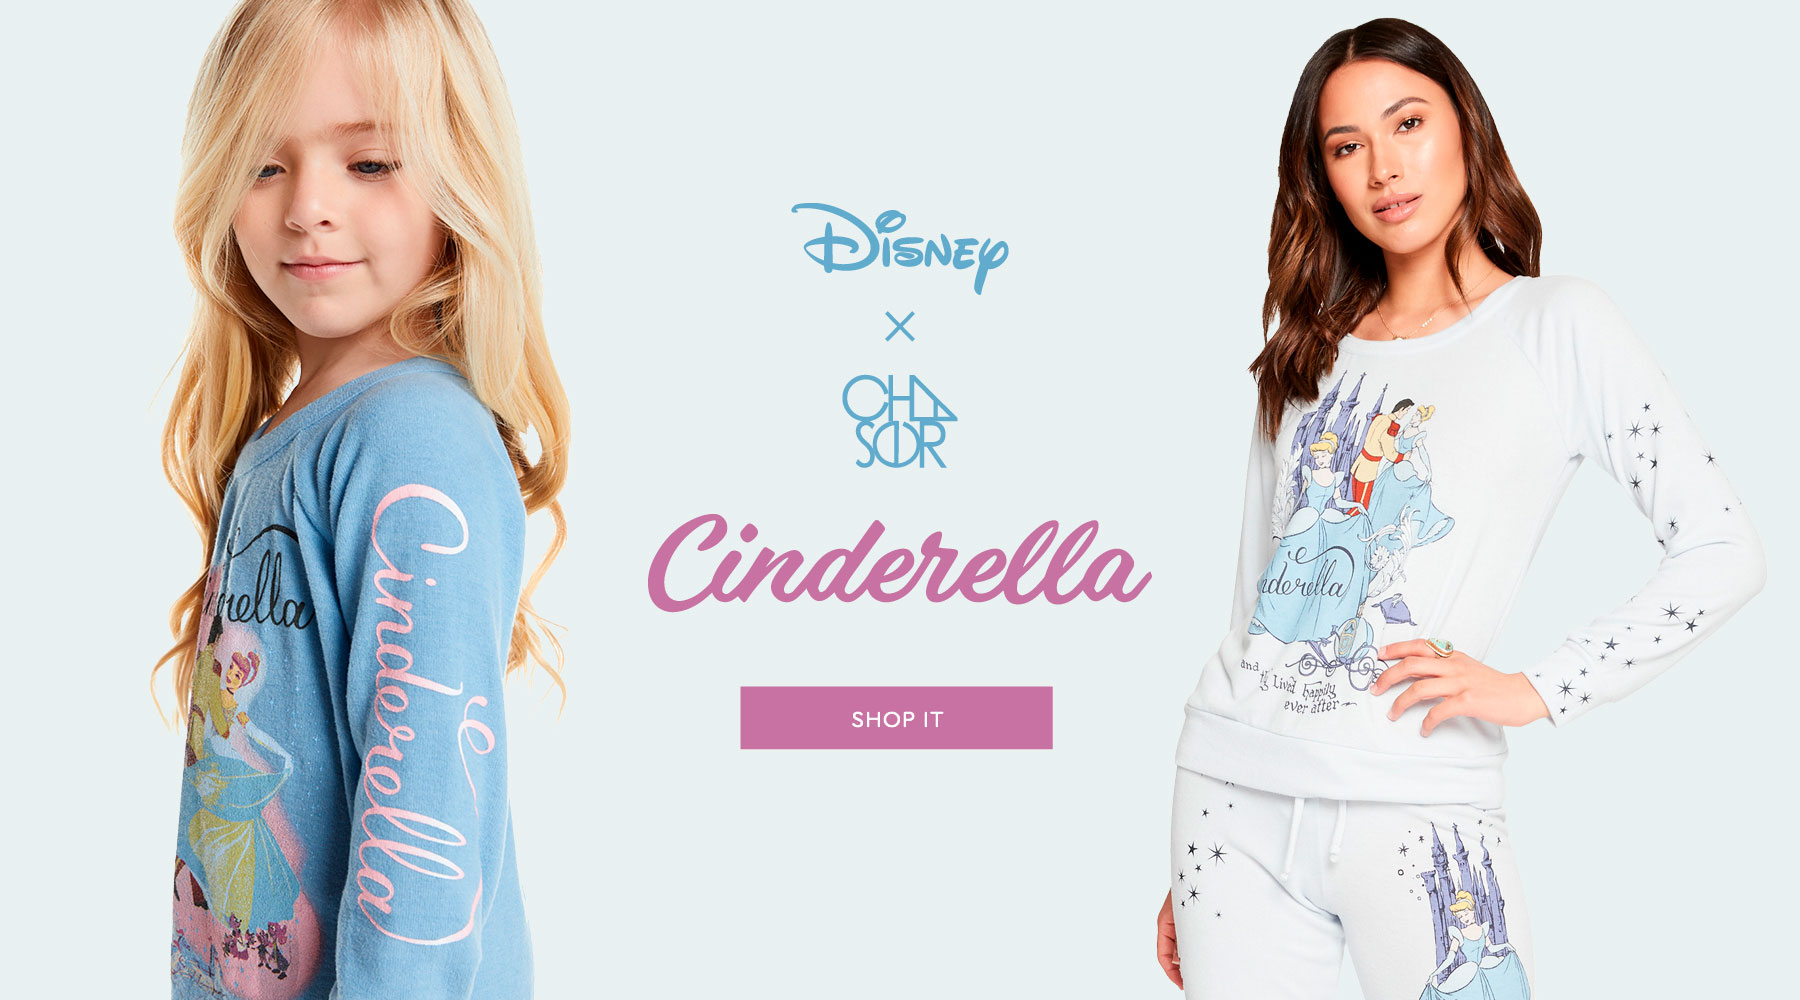 Check out all of Chaser and Disney's collaborations, including Disney's Minnie Mouse, Disney's the Little Mermaid, Disney Cinderella, Pixar, Disney Frozen II and Star Wars!